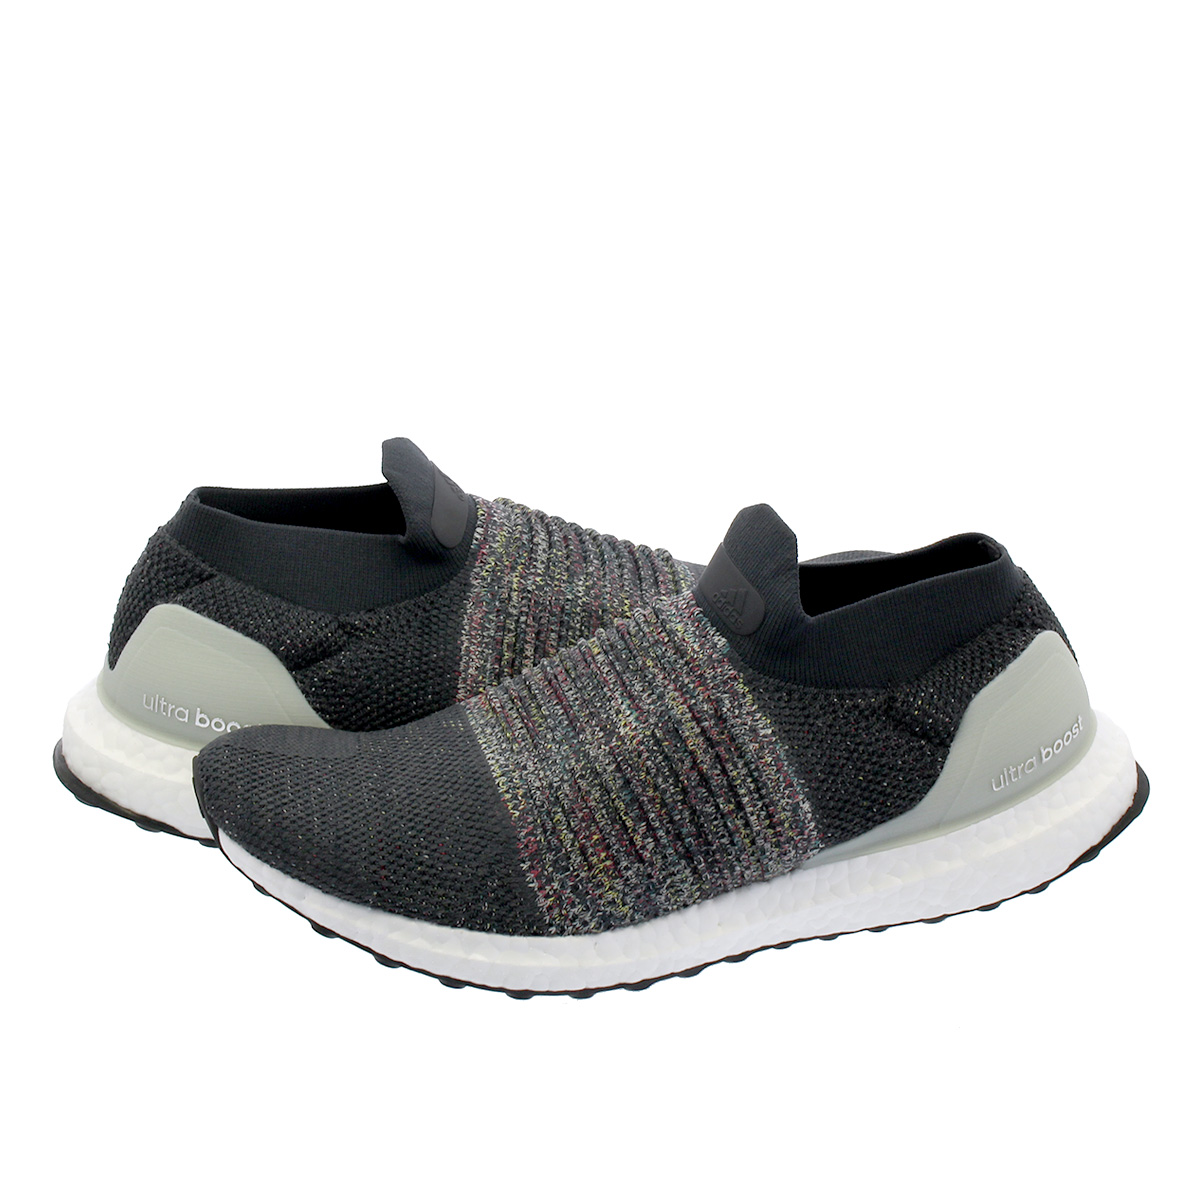 c9d35ff9508ba adidas UltraBOOST LACELESS Adidas ultra boost raceless CARBON SOLID  GREY ASH SILVER cm8267